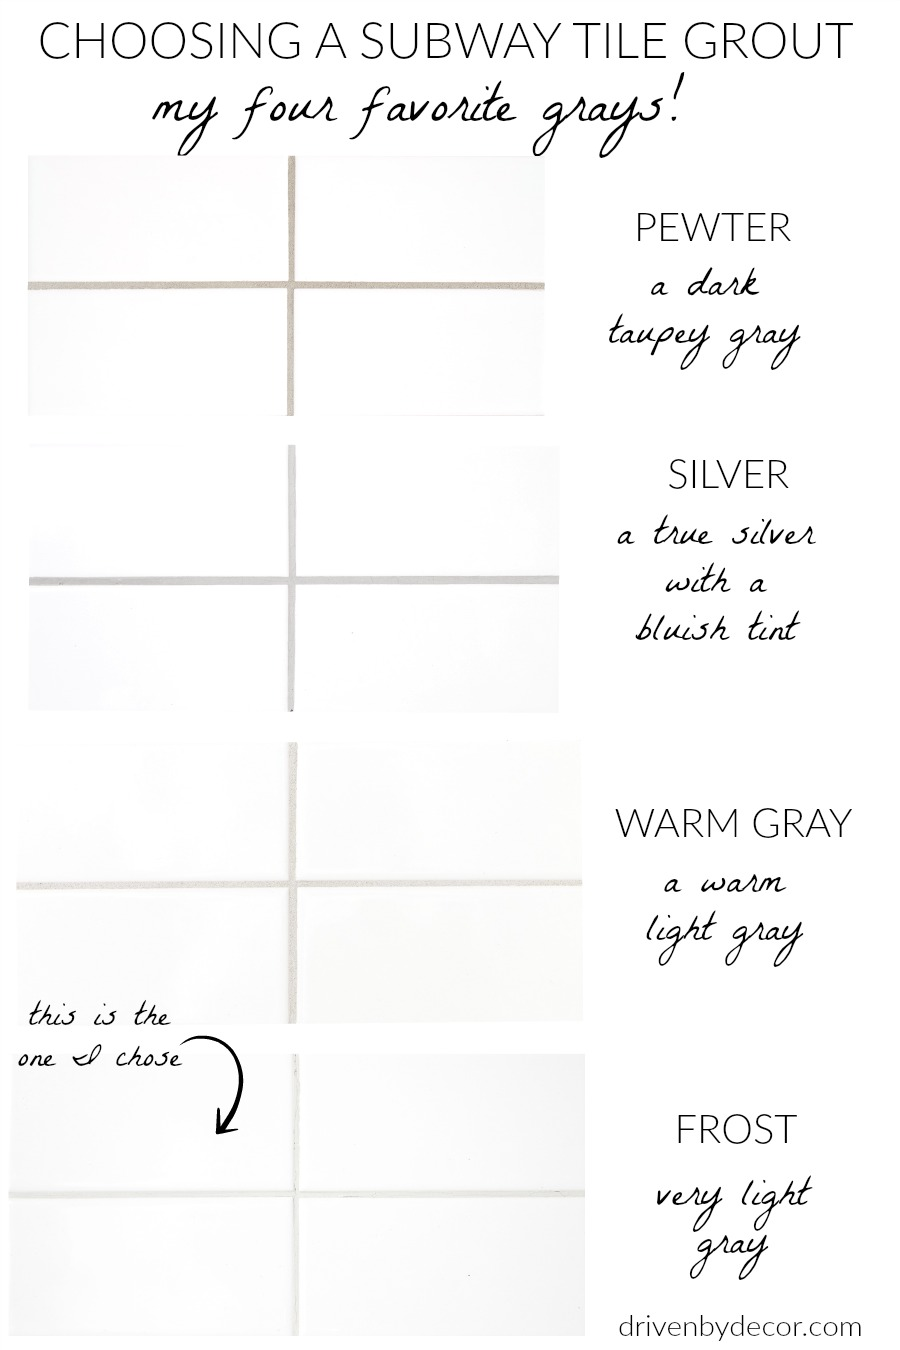 White subway tile with gray grout - my favorite grays to choose from